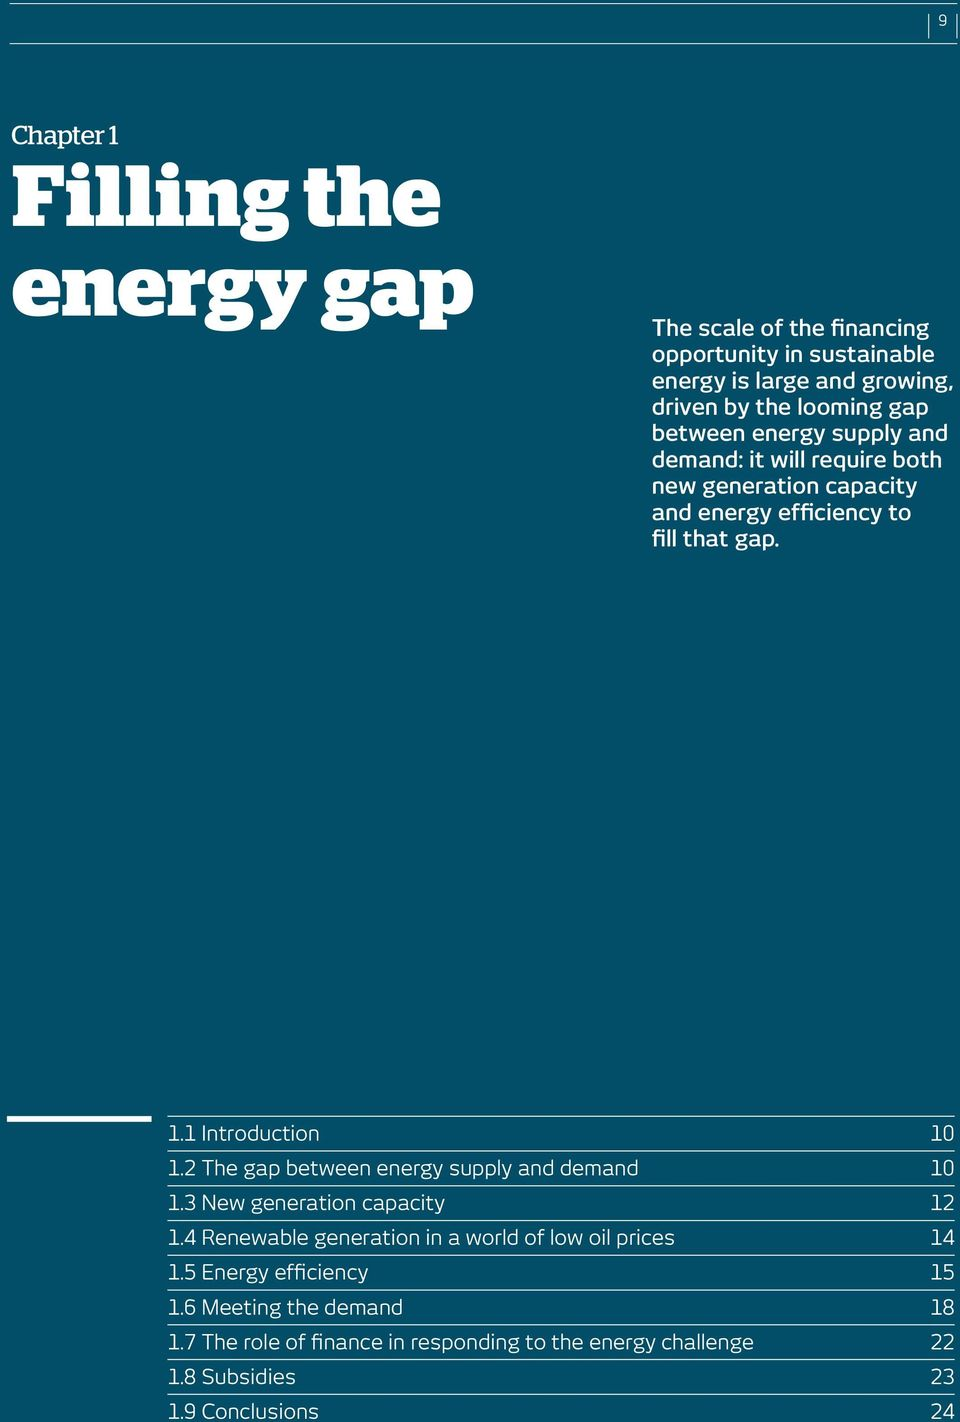 1 Introduction 10 1.2 The gap between energy supply and demand 10 1.3 New generation capacity 12 1.